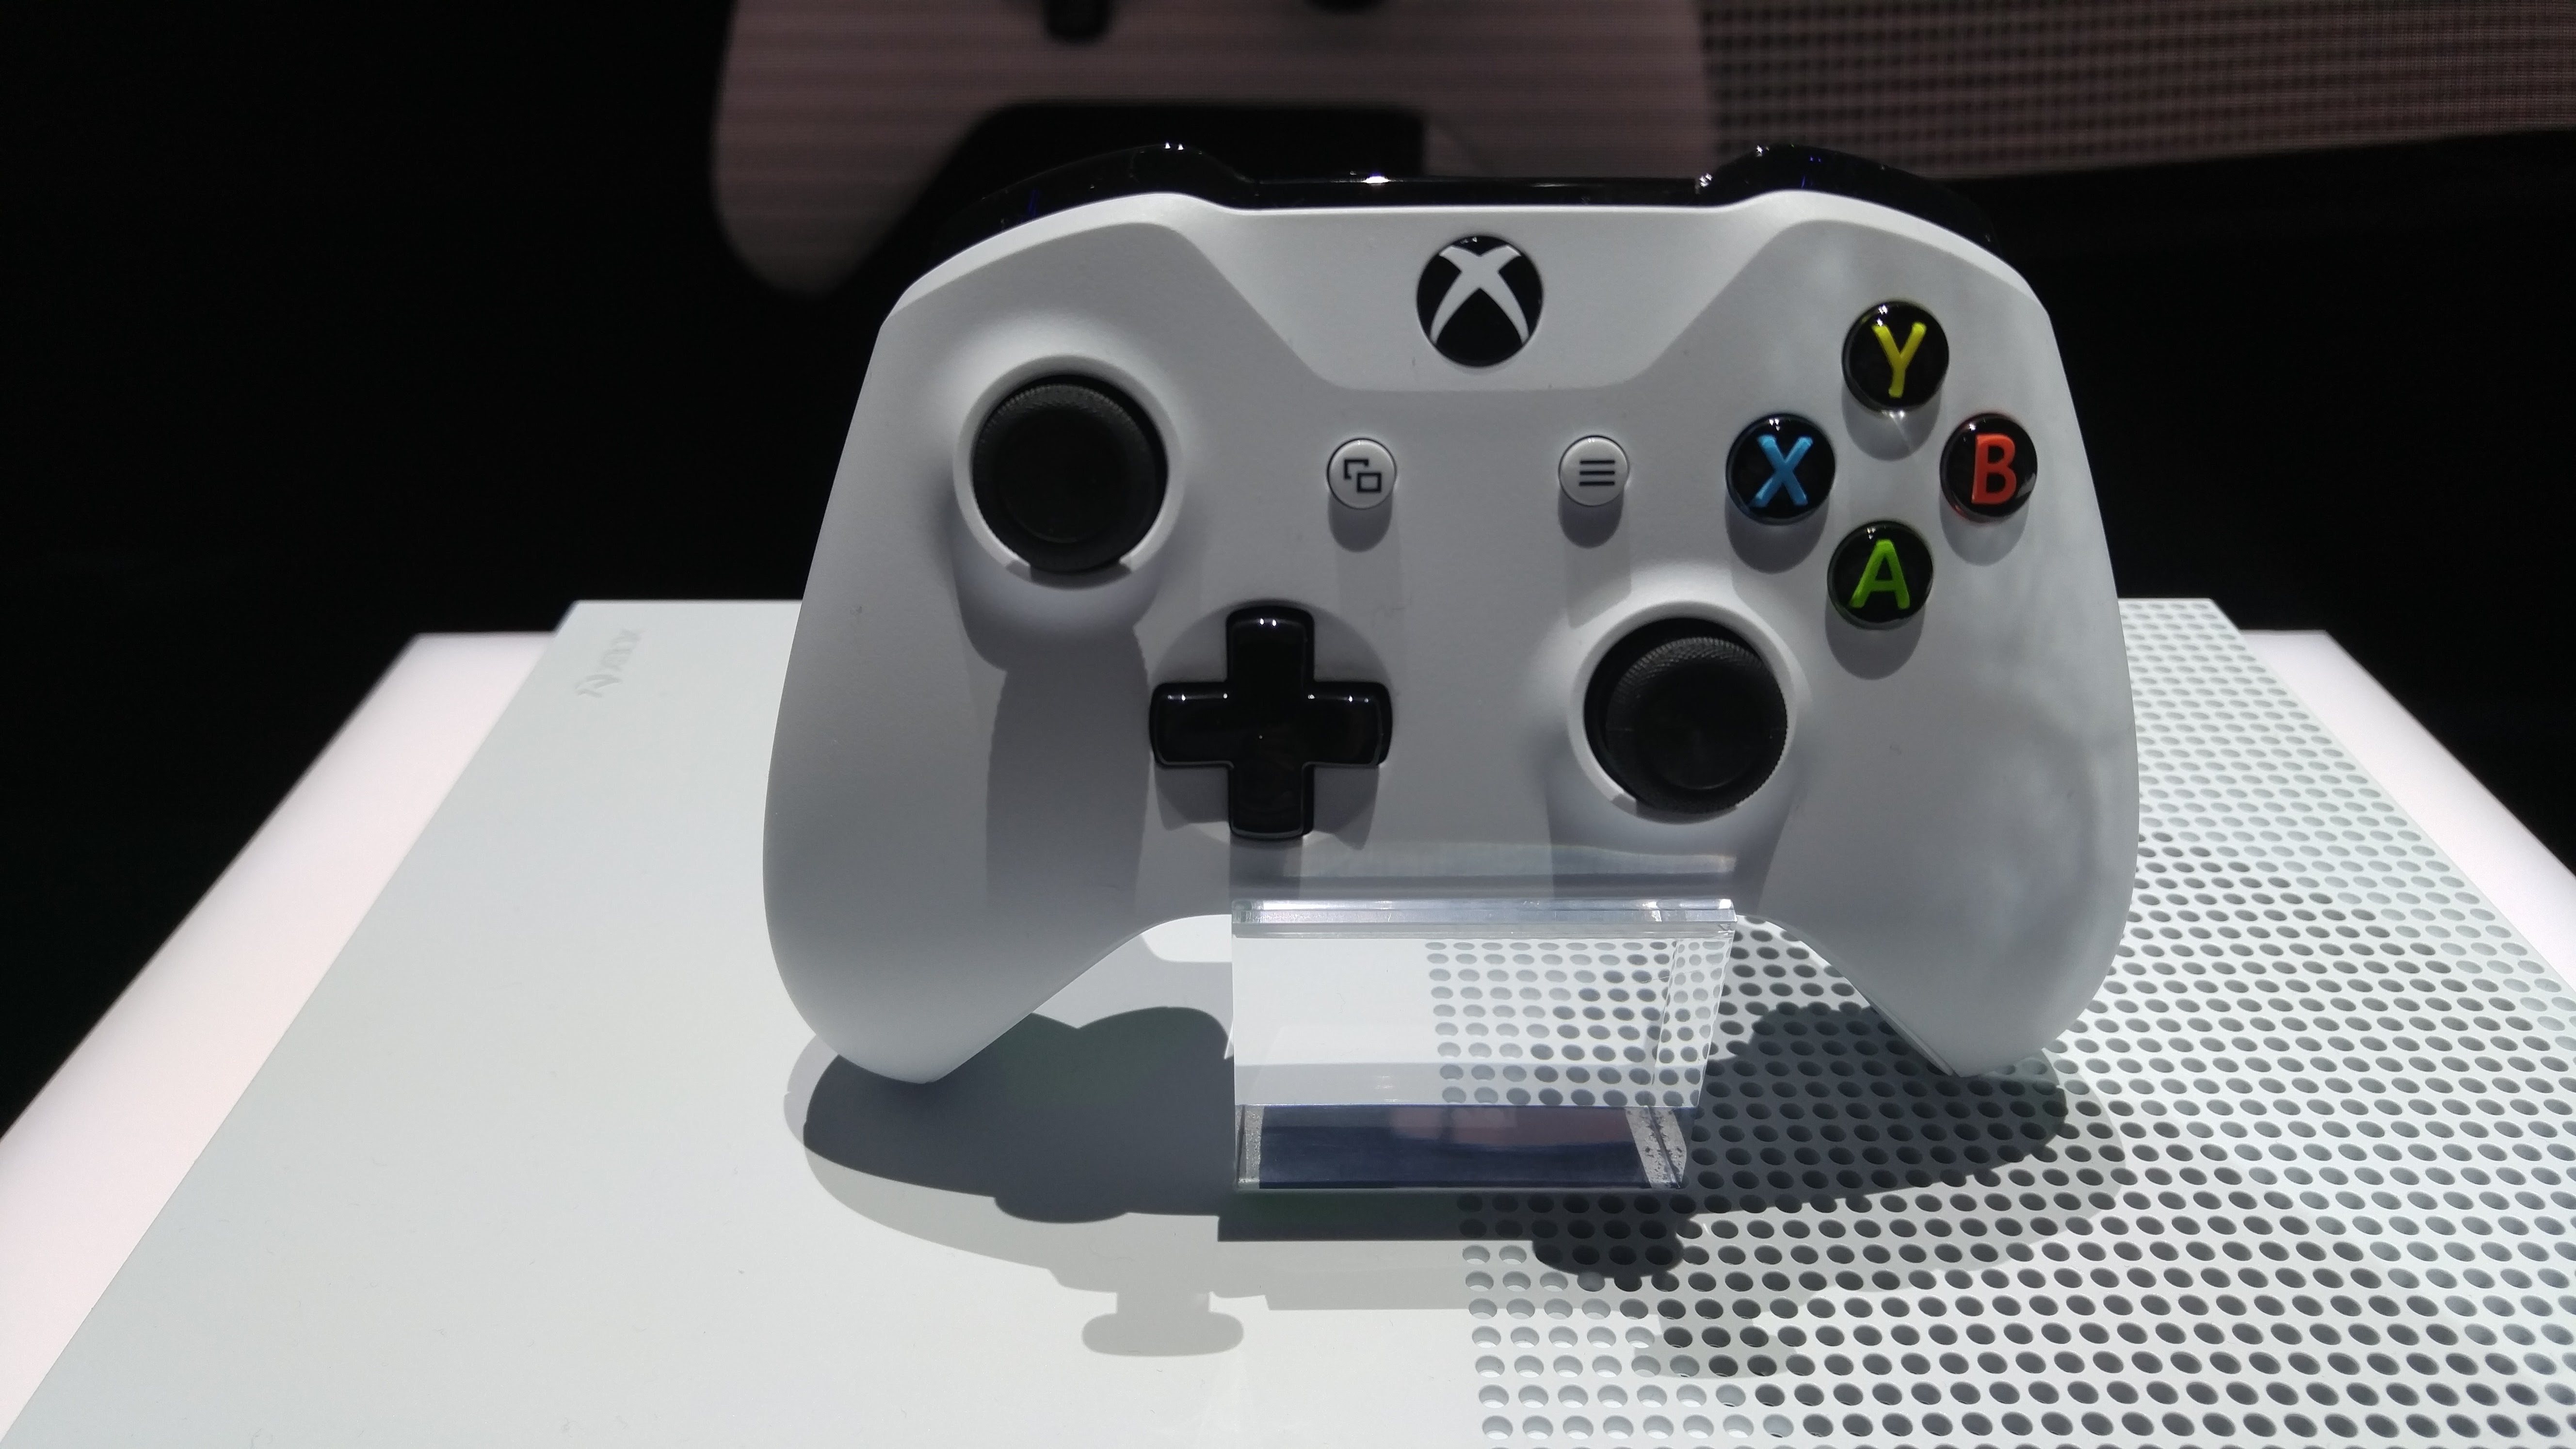 Hands-on with Microsoft's new Xbox One controller: Bluetooth, better